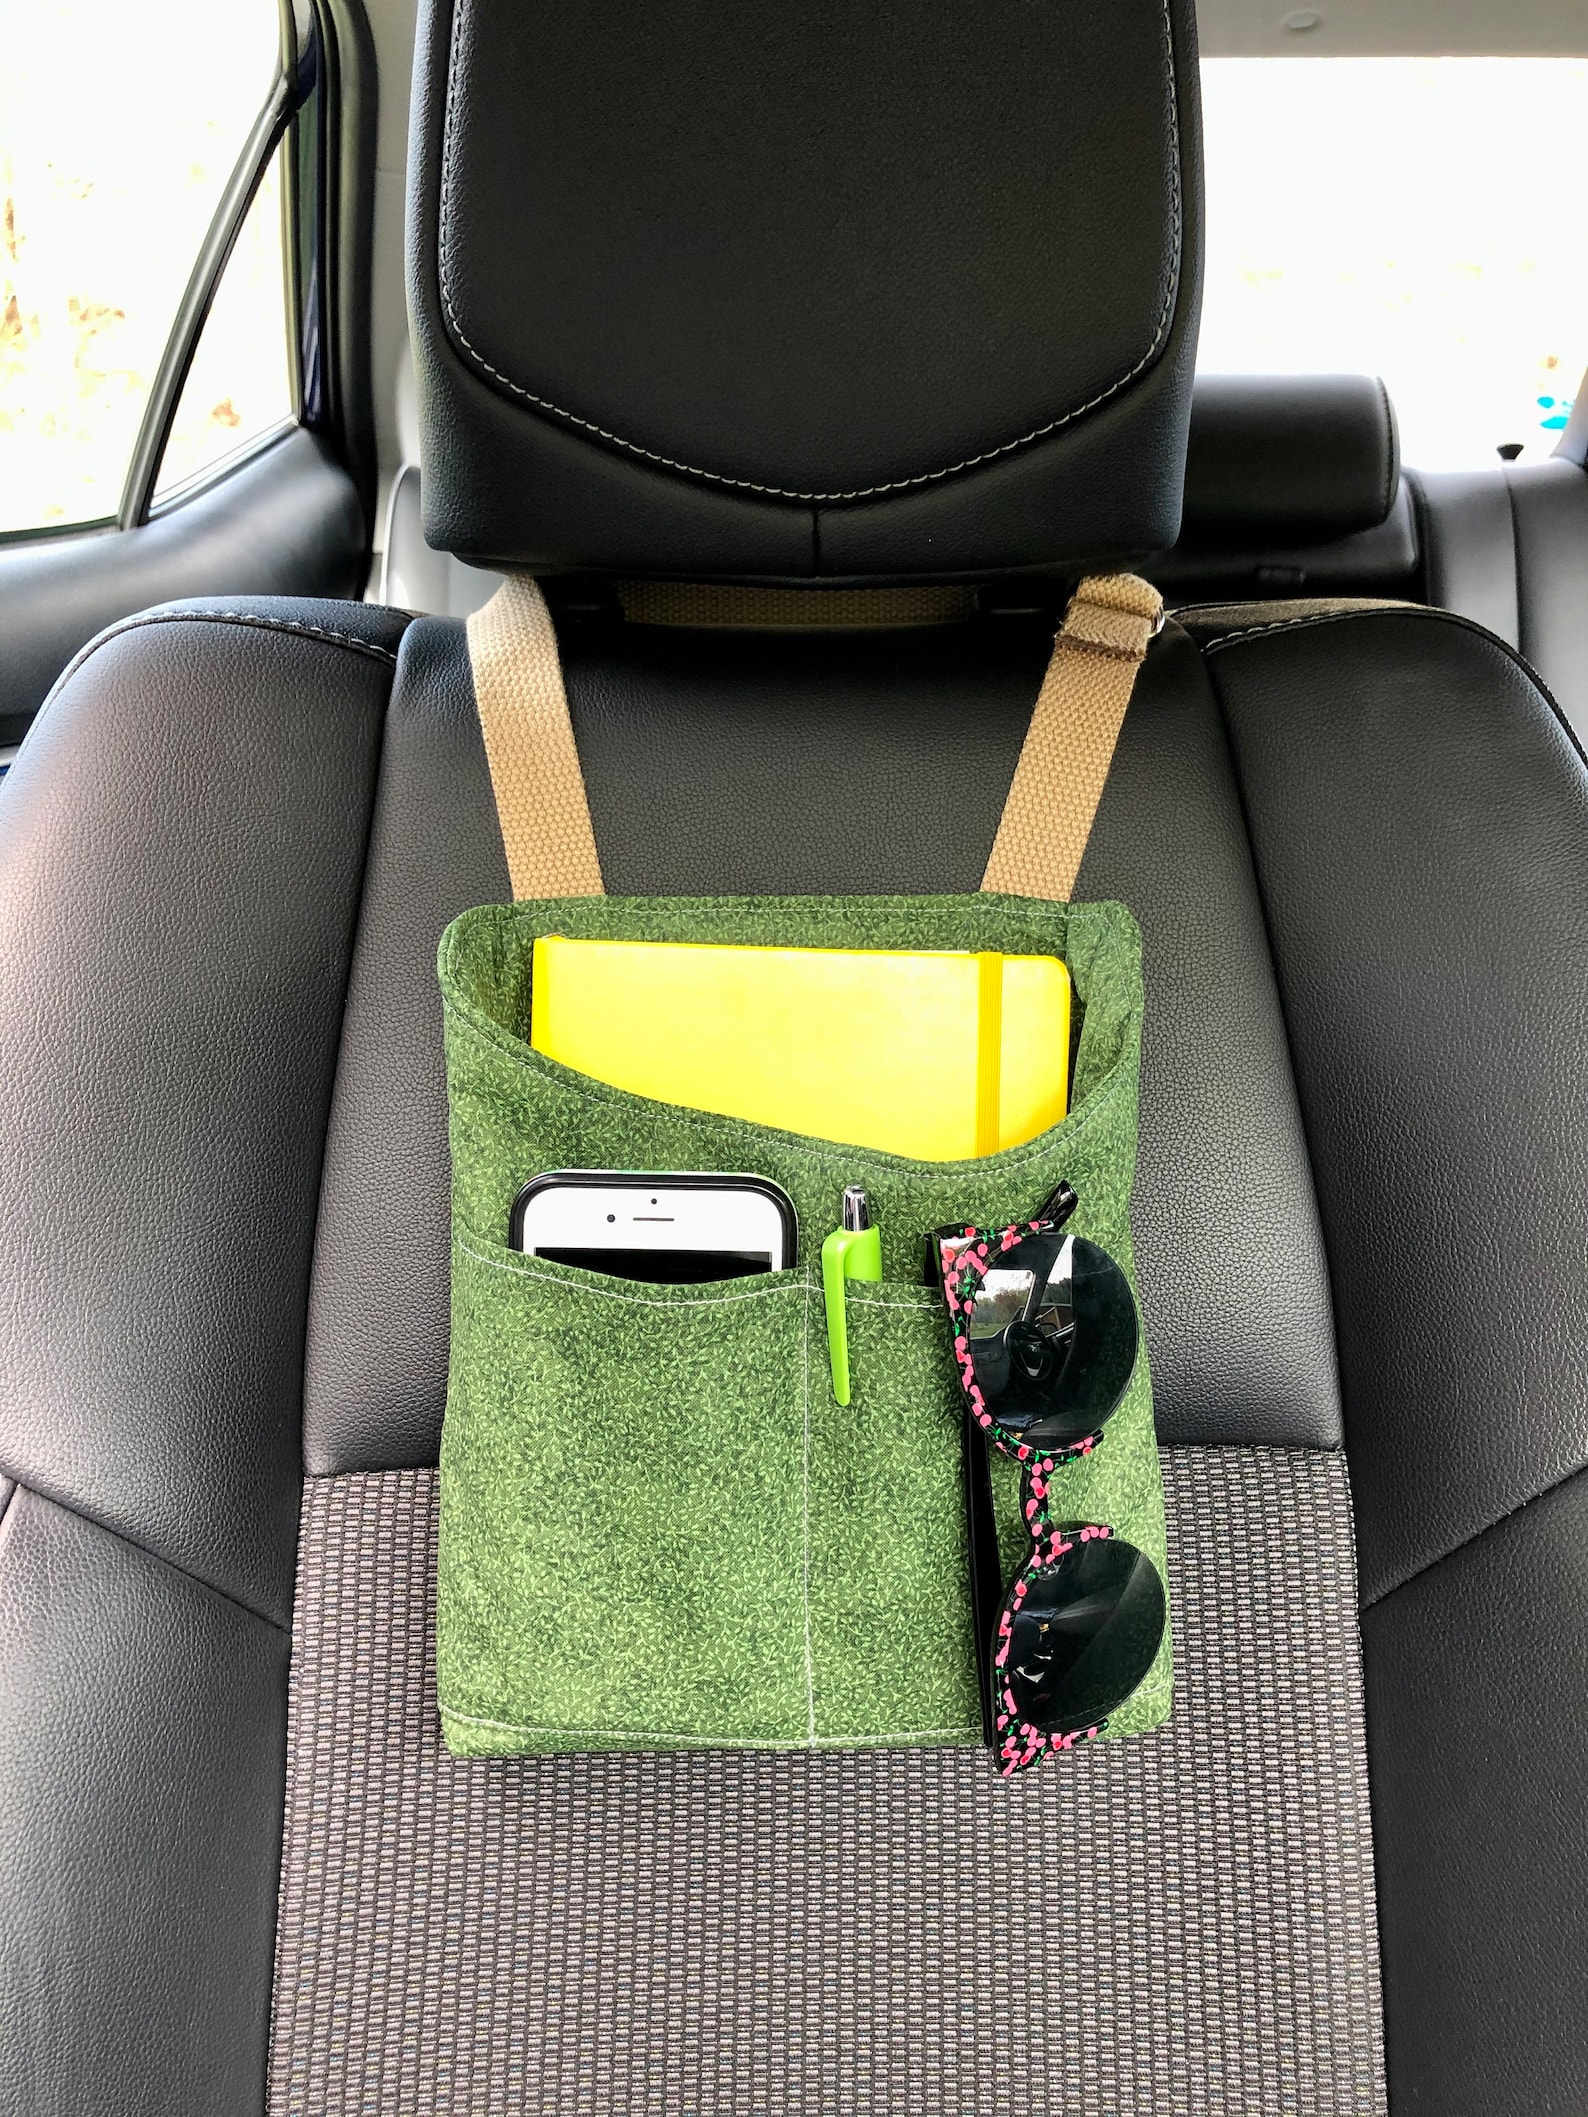 Car Organization Caddy for front seat or back seat, adjustable